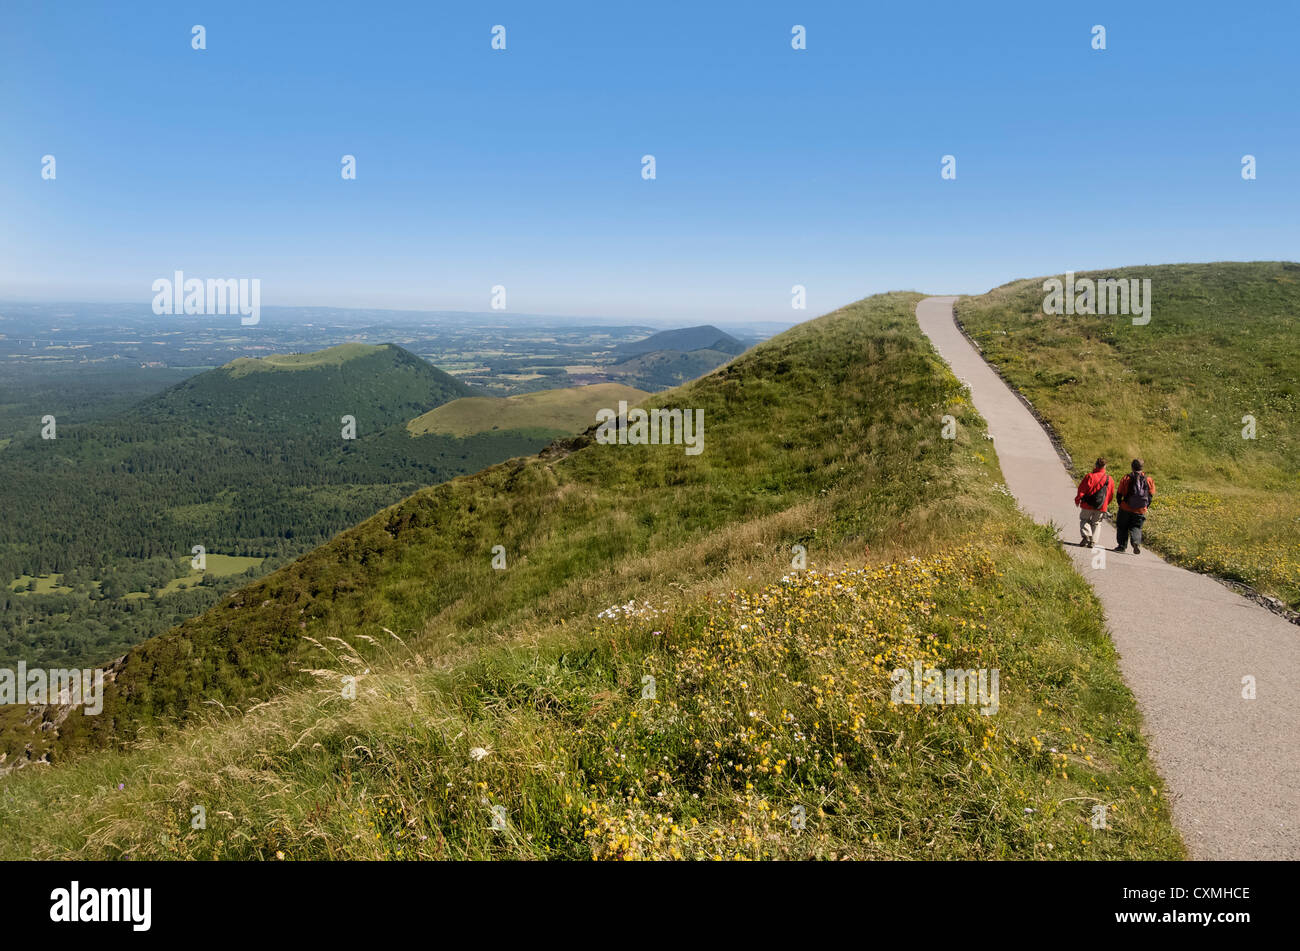 Hikers and view from Puy de Dome onto the volcanic landscape of the Chaine des Puys, Massif Central, Auvergne, France, - Stock Image